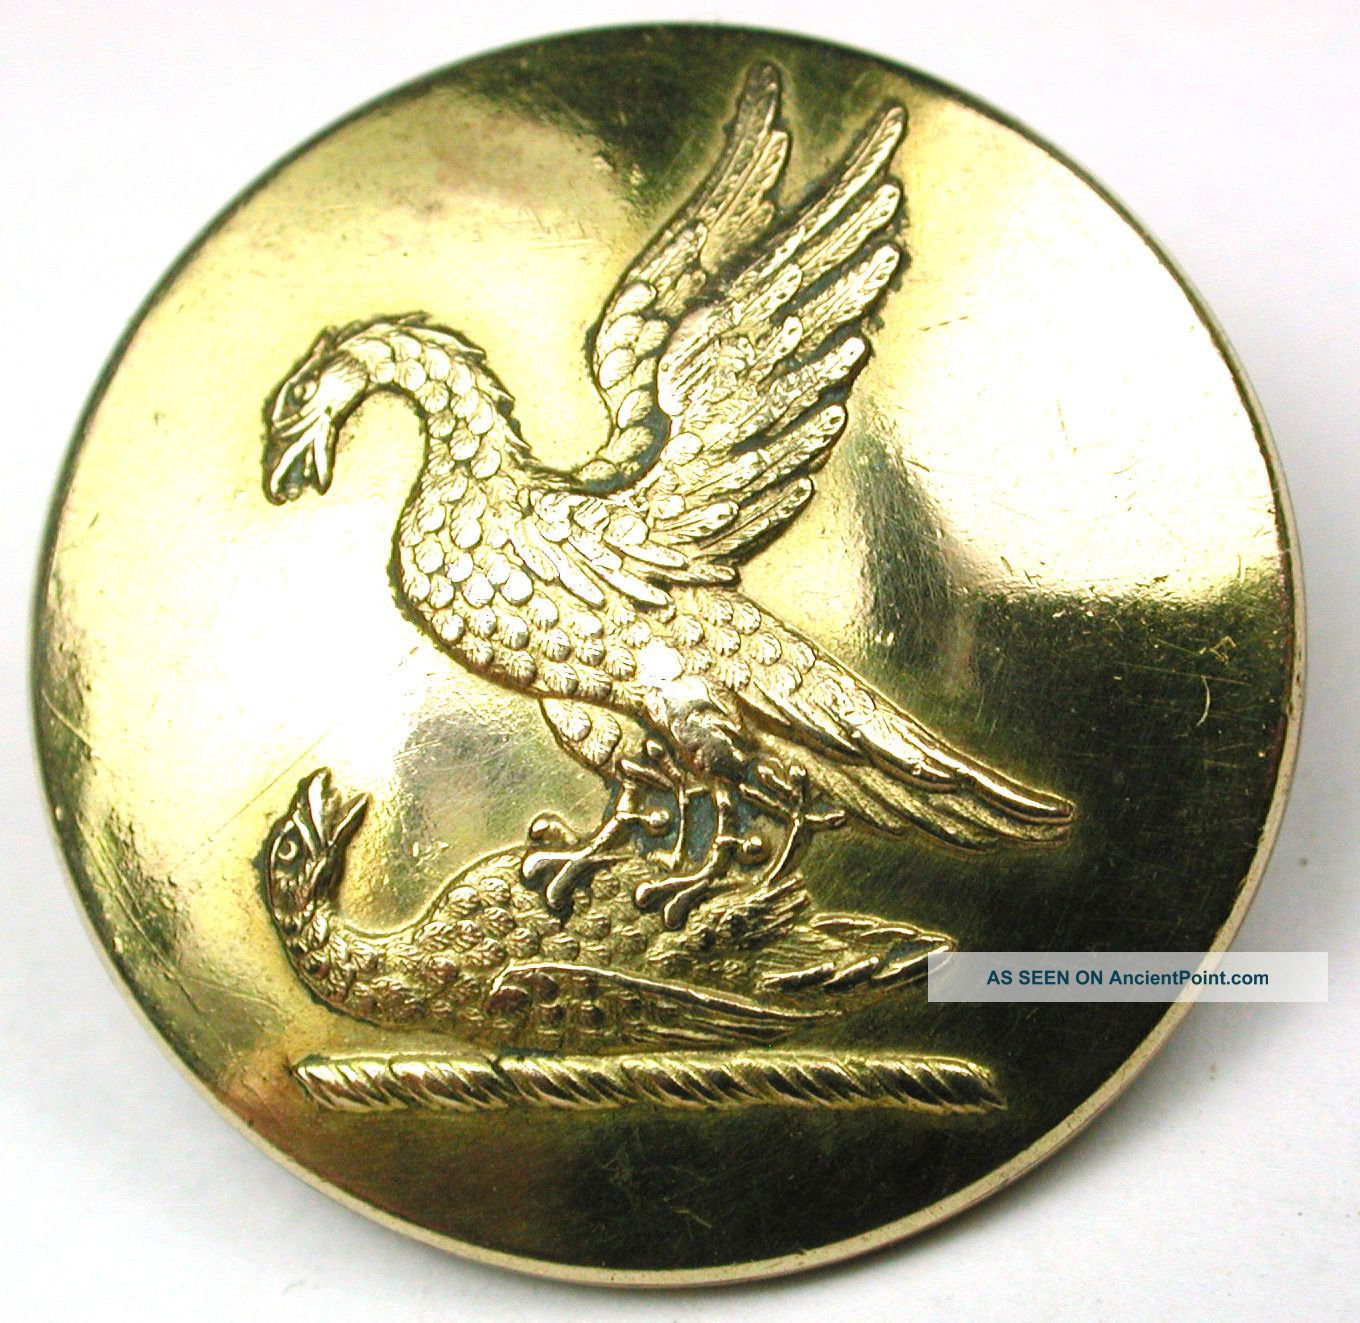 Antique Brass Livery Button - 1 Eagle Attacks Another - Armfield - 1 Buttons photo